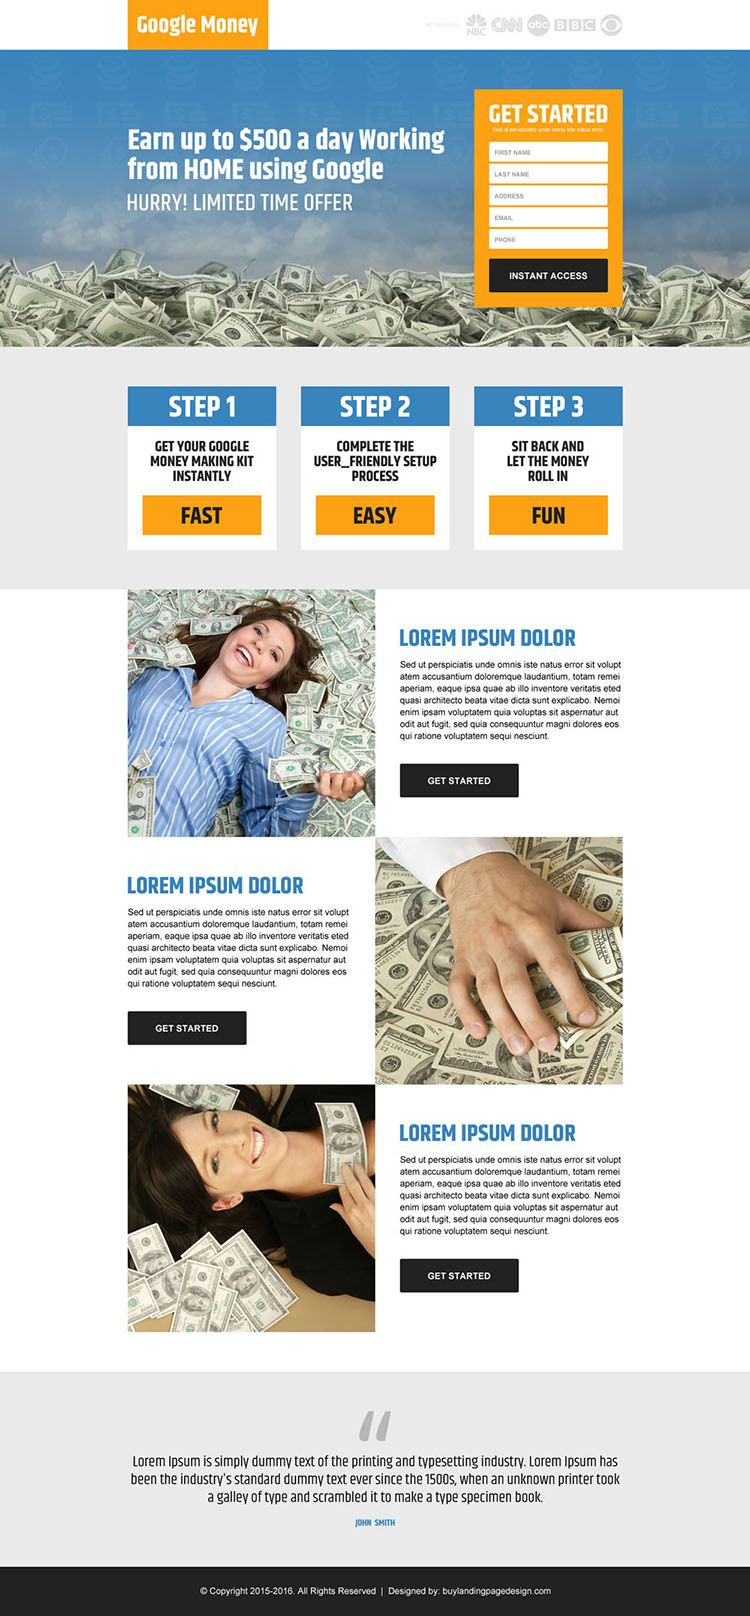 earn money online using google responsive lead capture landing page design